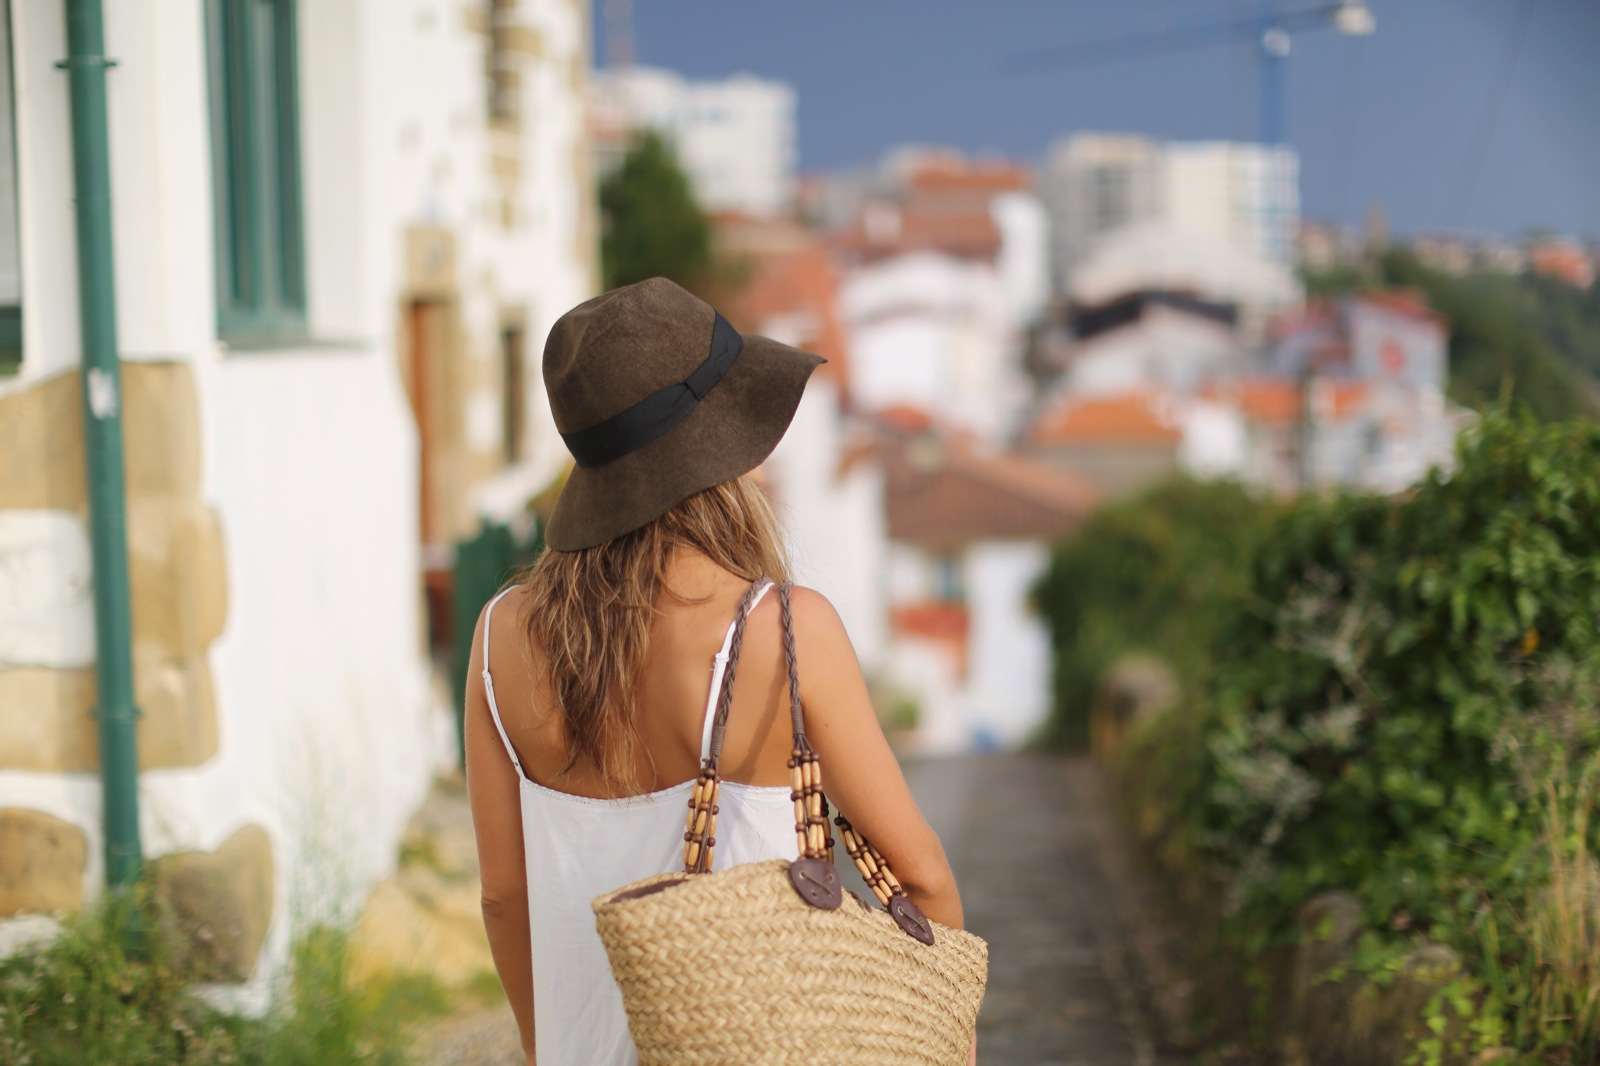 Clochet_suiteblanco_white_boho_dress_zara_fedora_hat_straw_basket_12